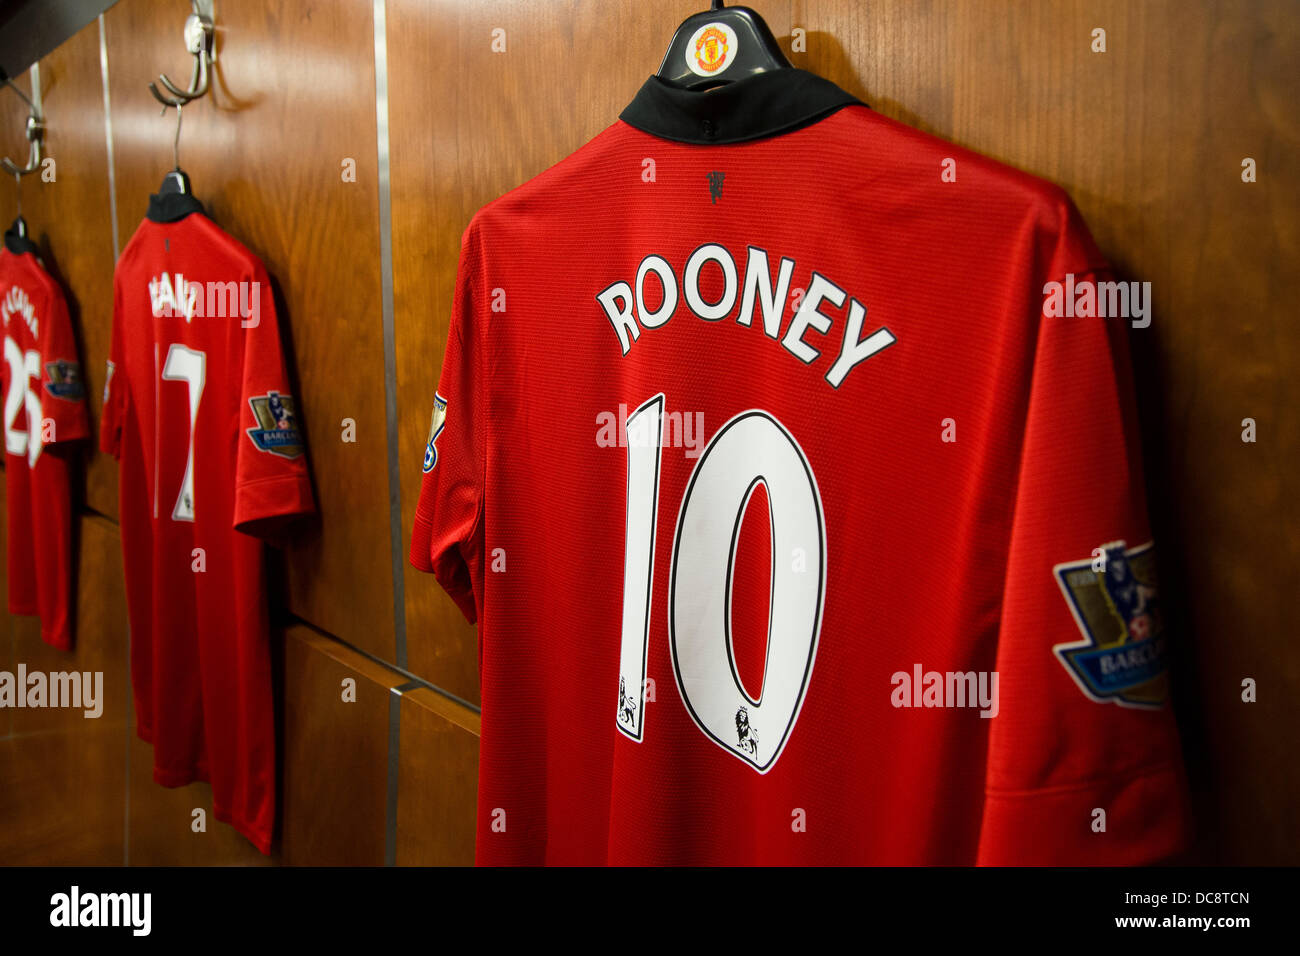 Wayne Rooney's Manchester United football shirt hanging in the old trafford home dressing room - Stock Image